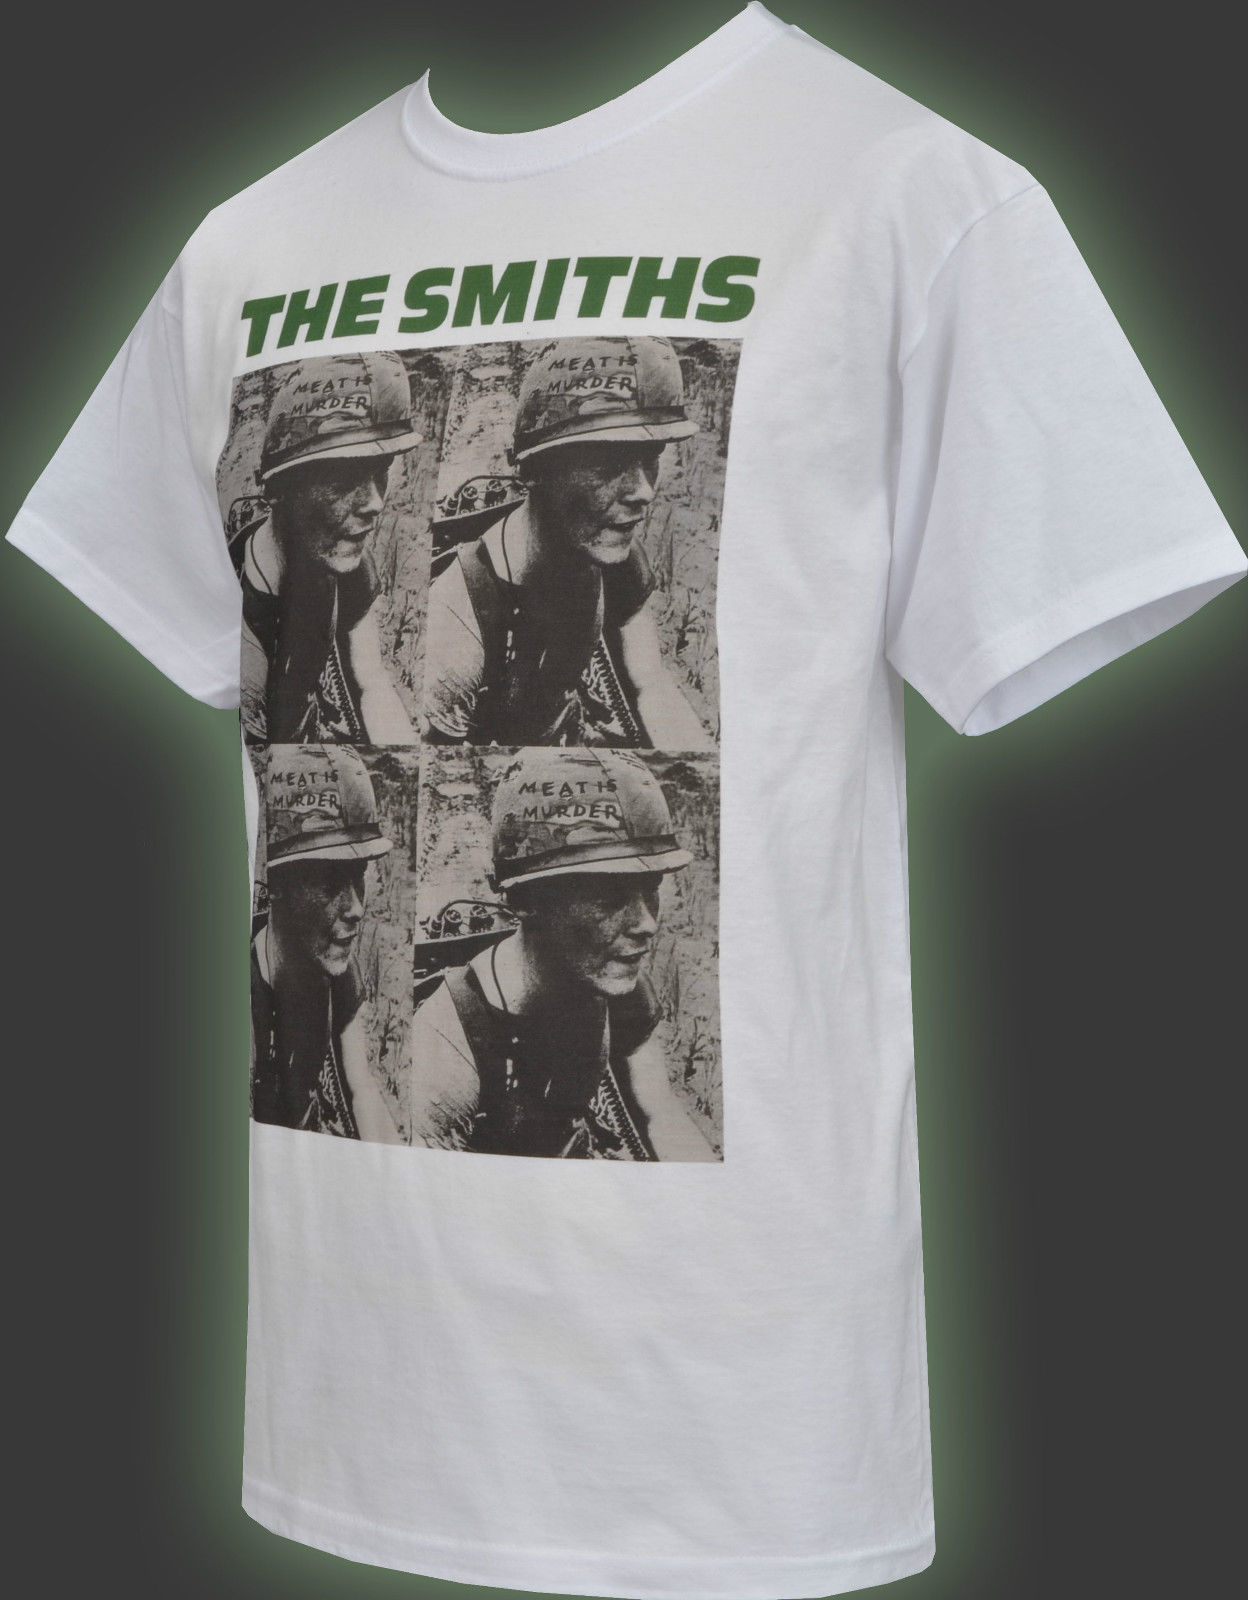 5XL MENS WHITE T-SHIRT THE SMITHS MEAT IS MURDER ARMY VEGAN MORRISSEY S